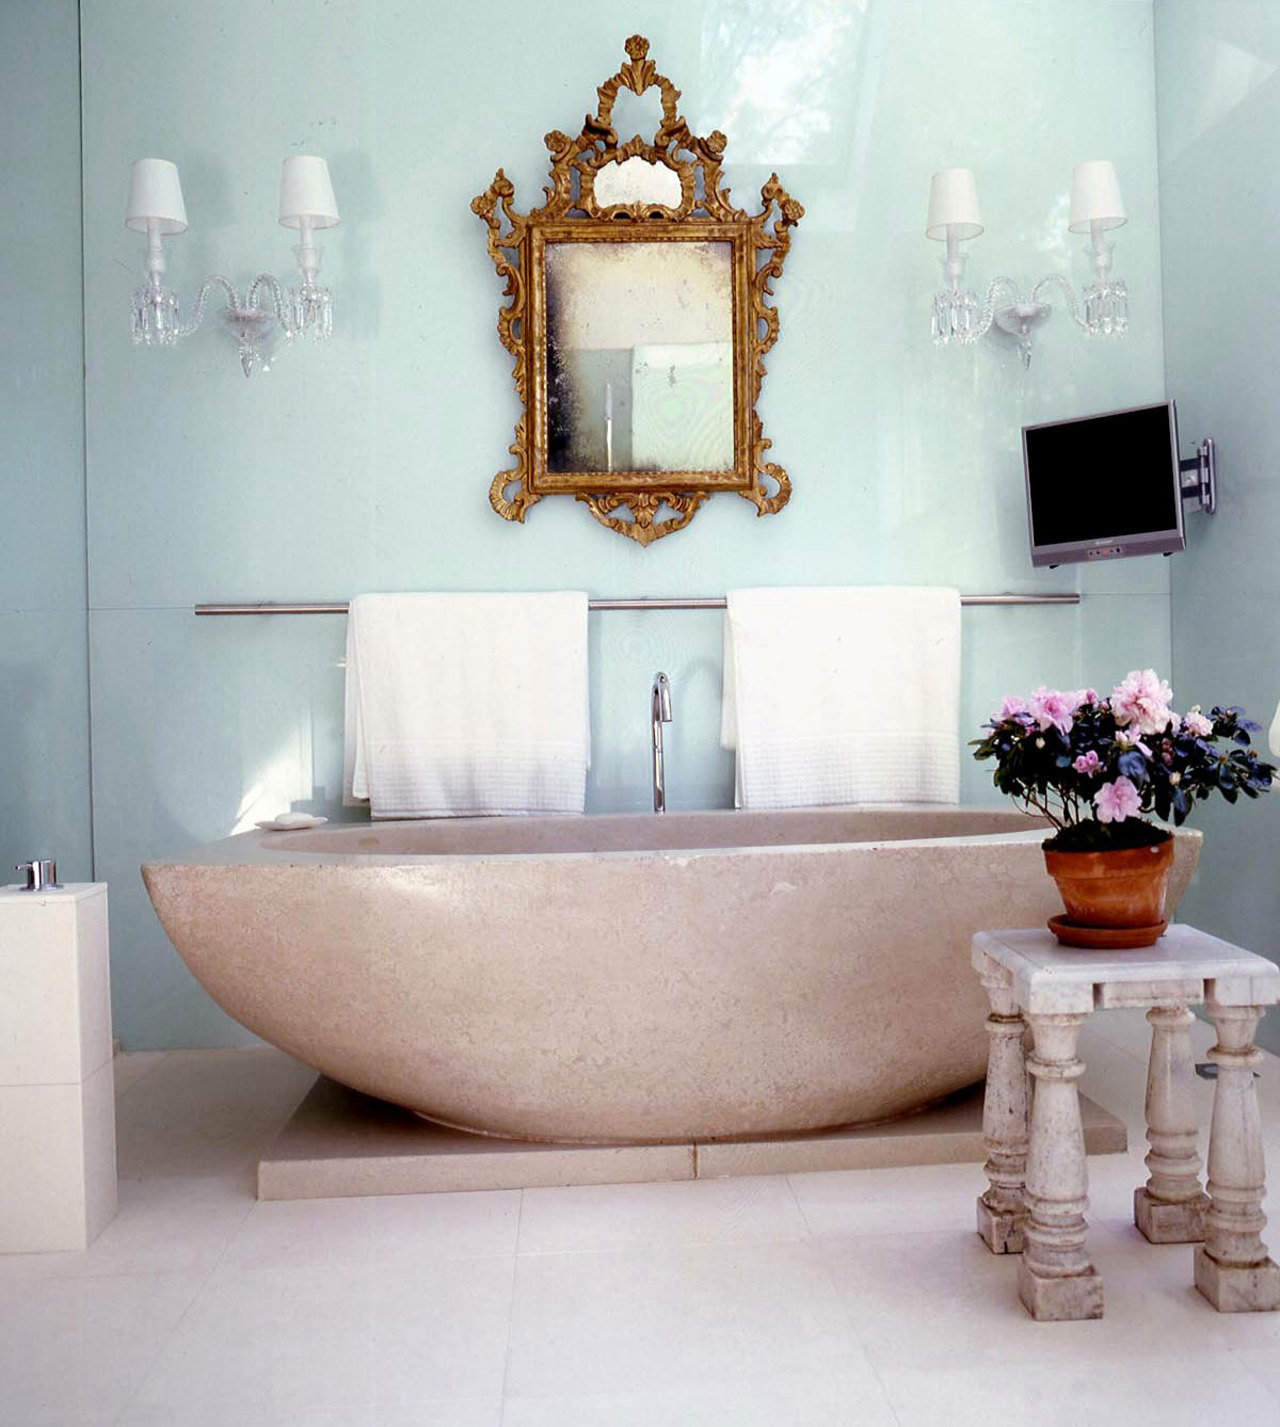 This bathroom designed by Vicente Wolf of Vicente Wolf Associates, Inc. in New York incorporates non-